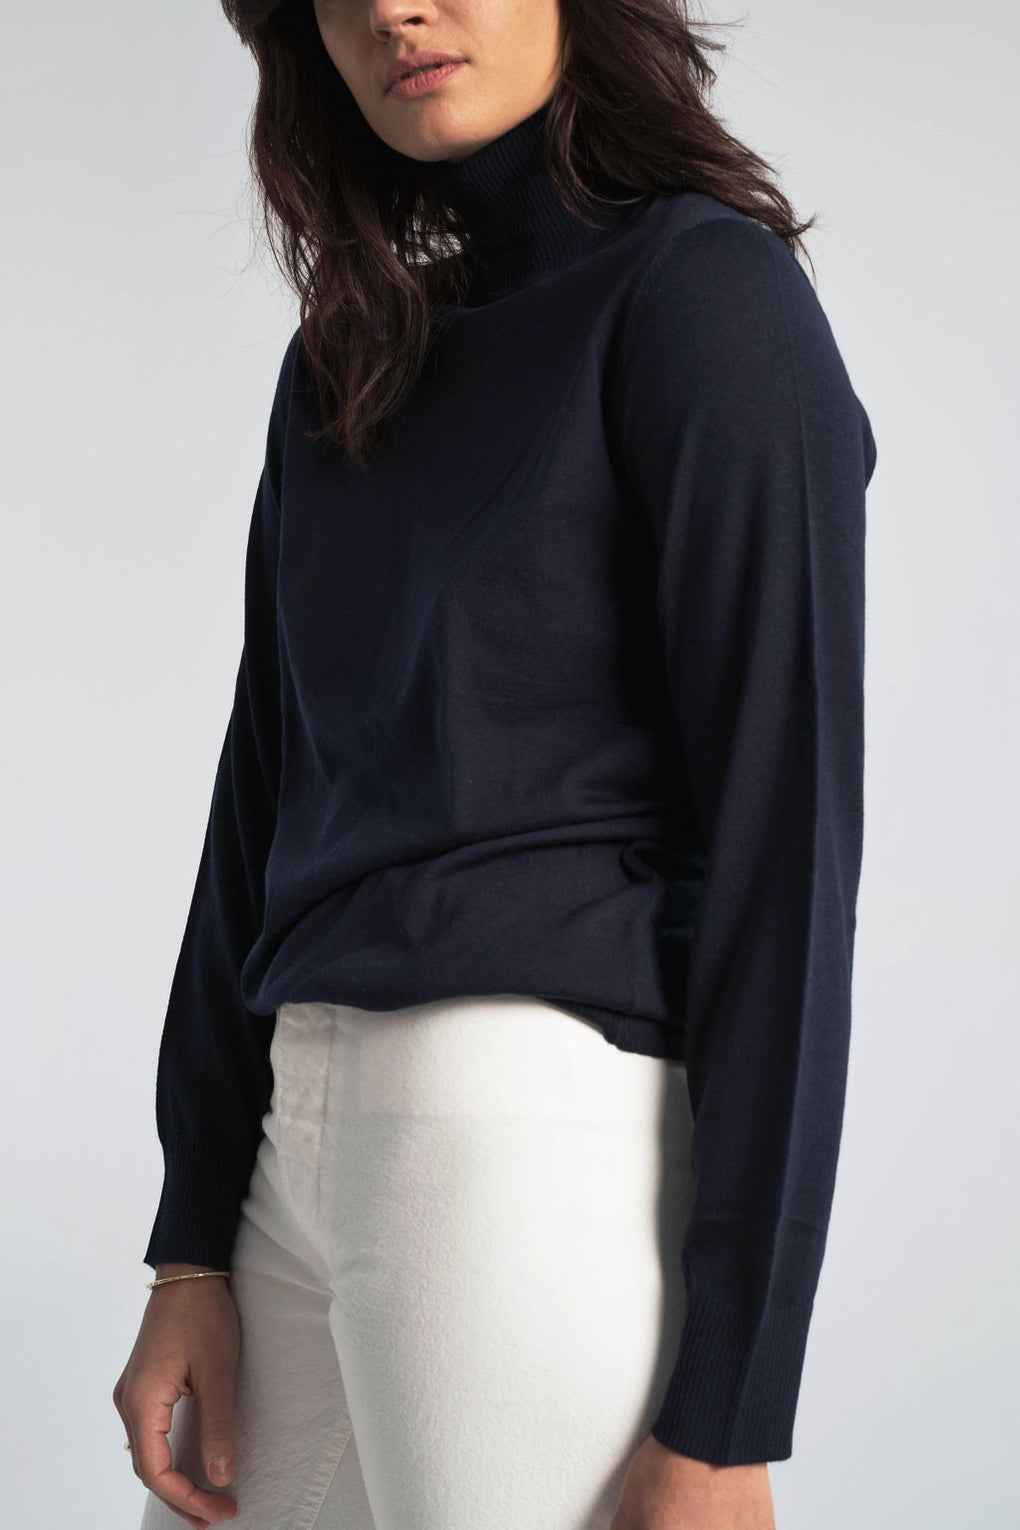 Anja Marino Sweater in Dark Navy